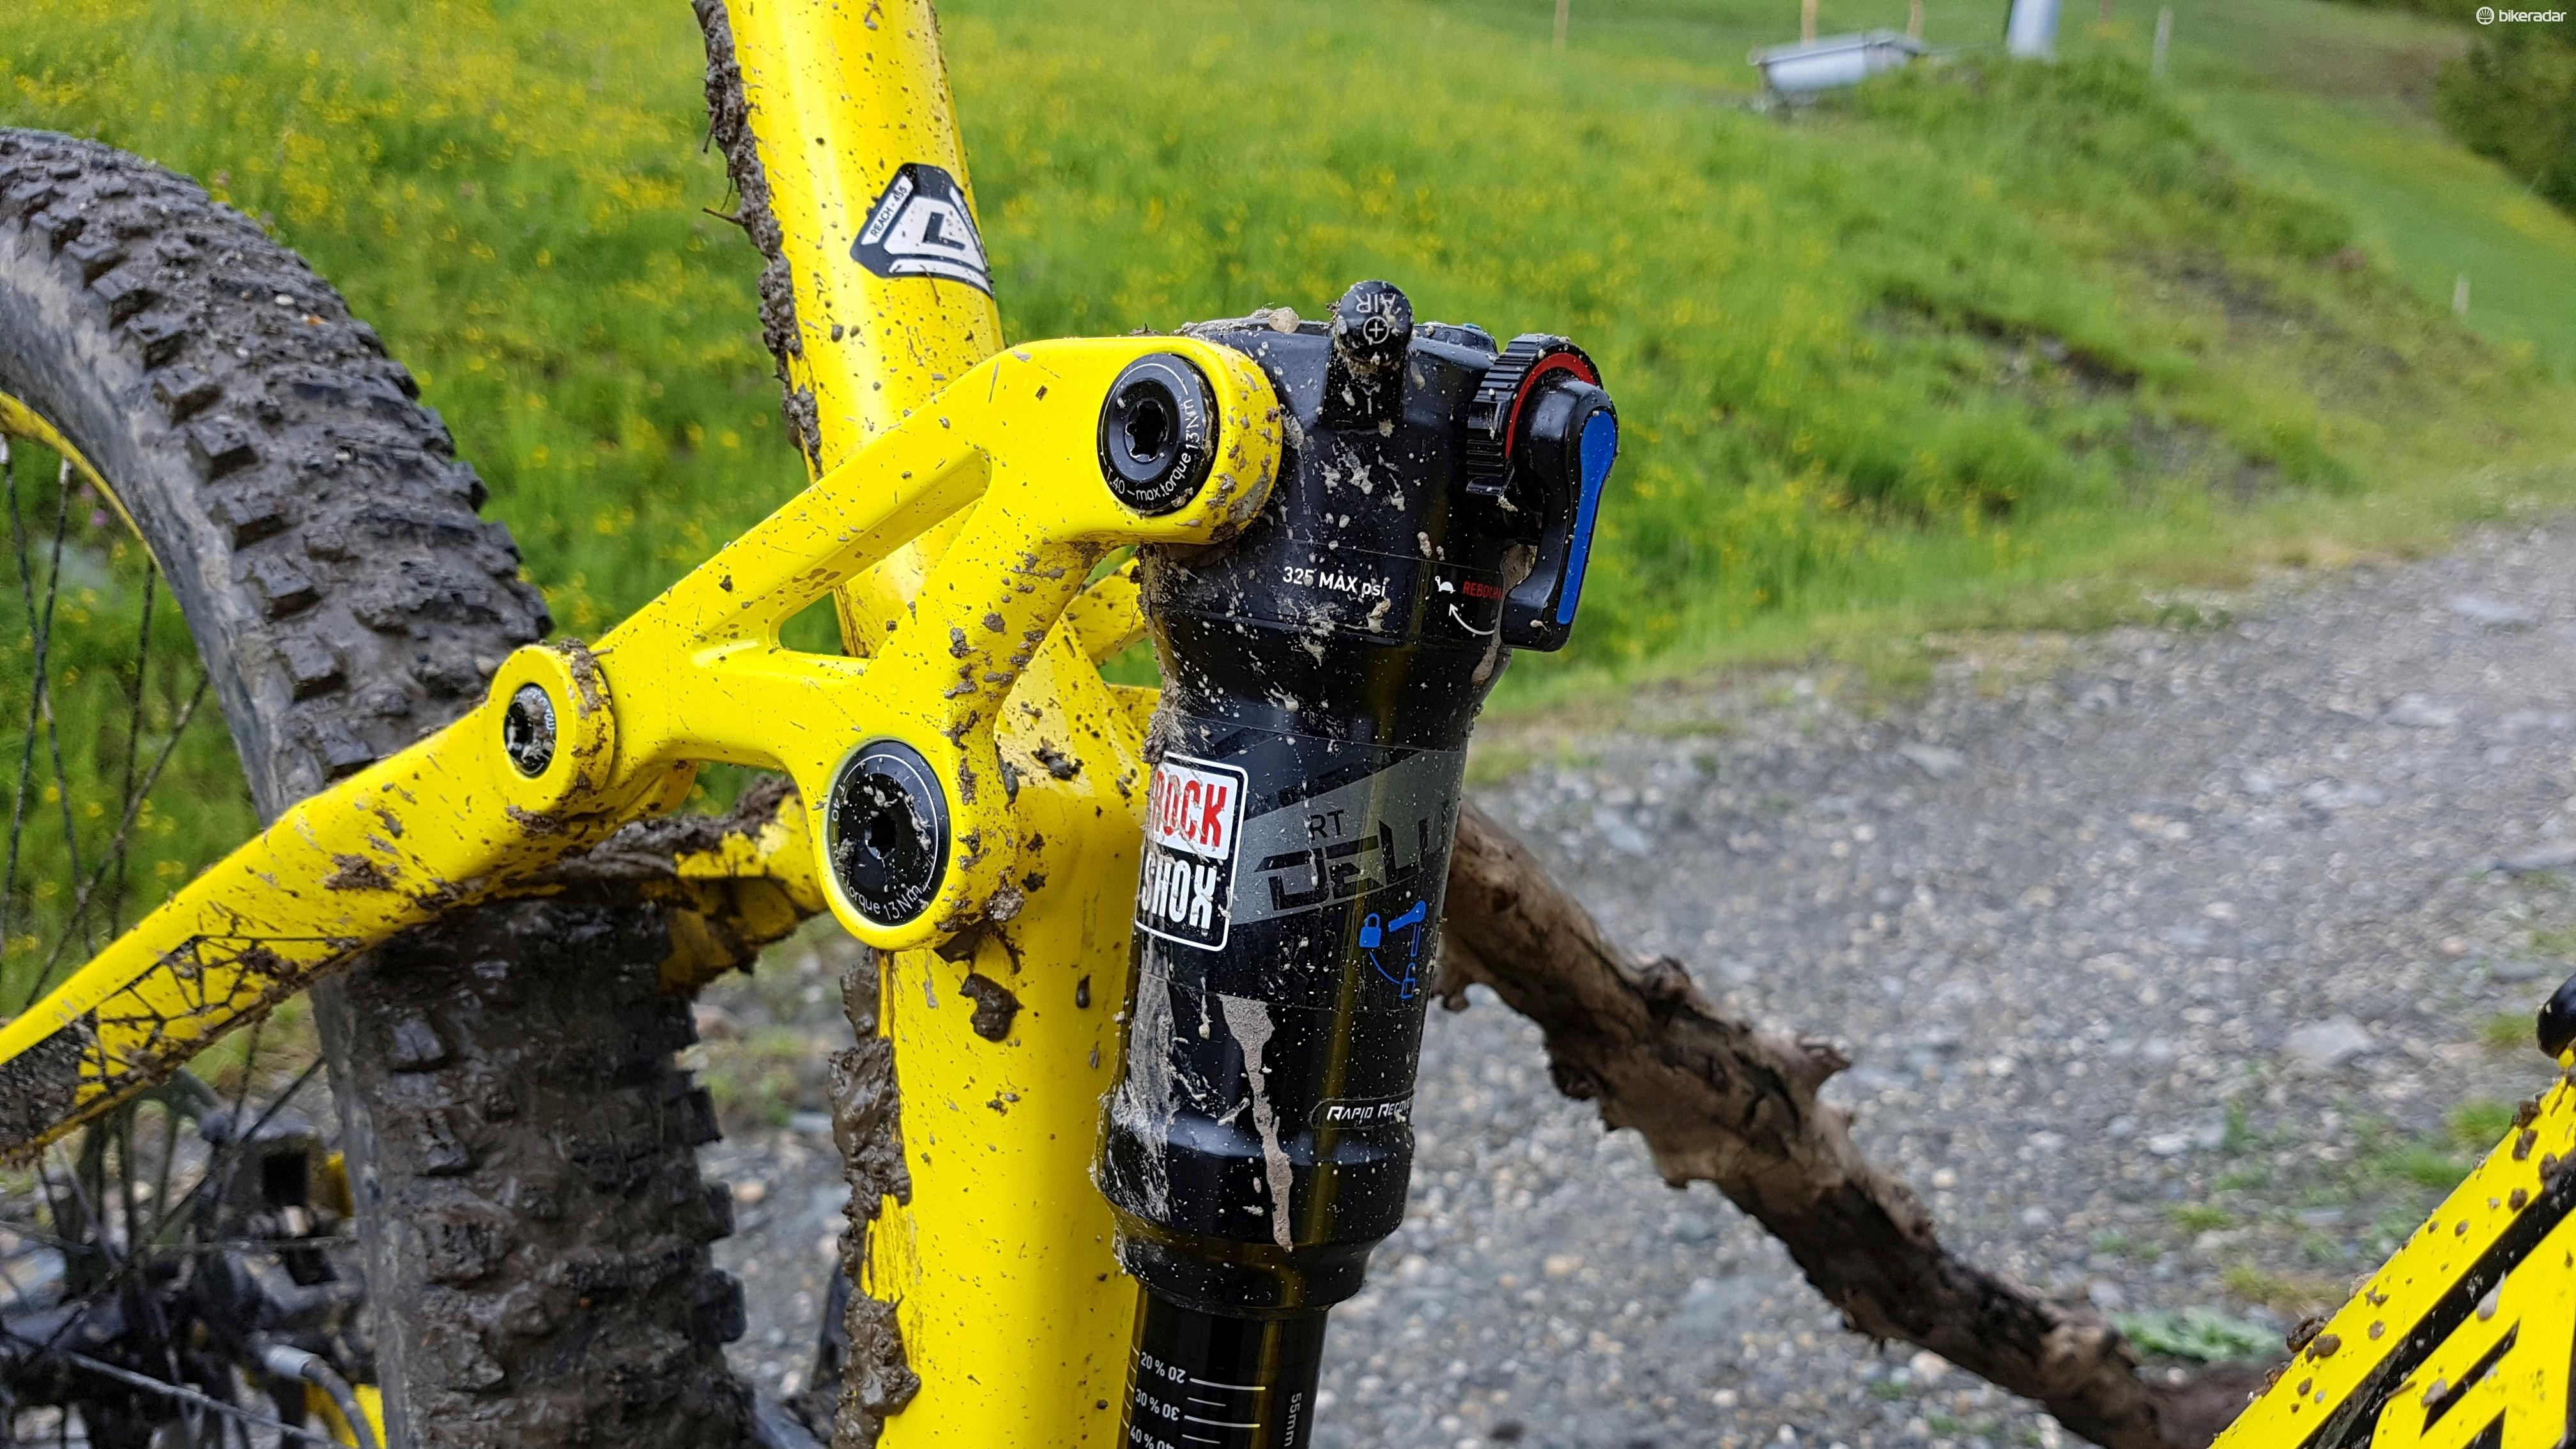 A trunnion-mounted RockShox Deluxe shock – we'll be seeing more of these appearing on bikes in the coming year